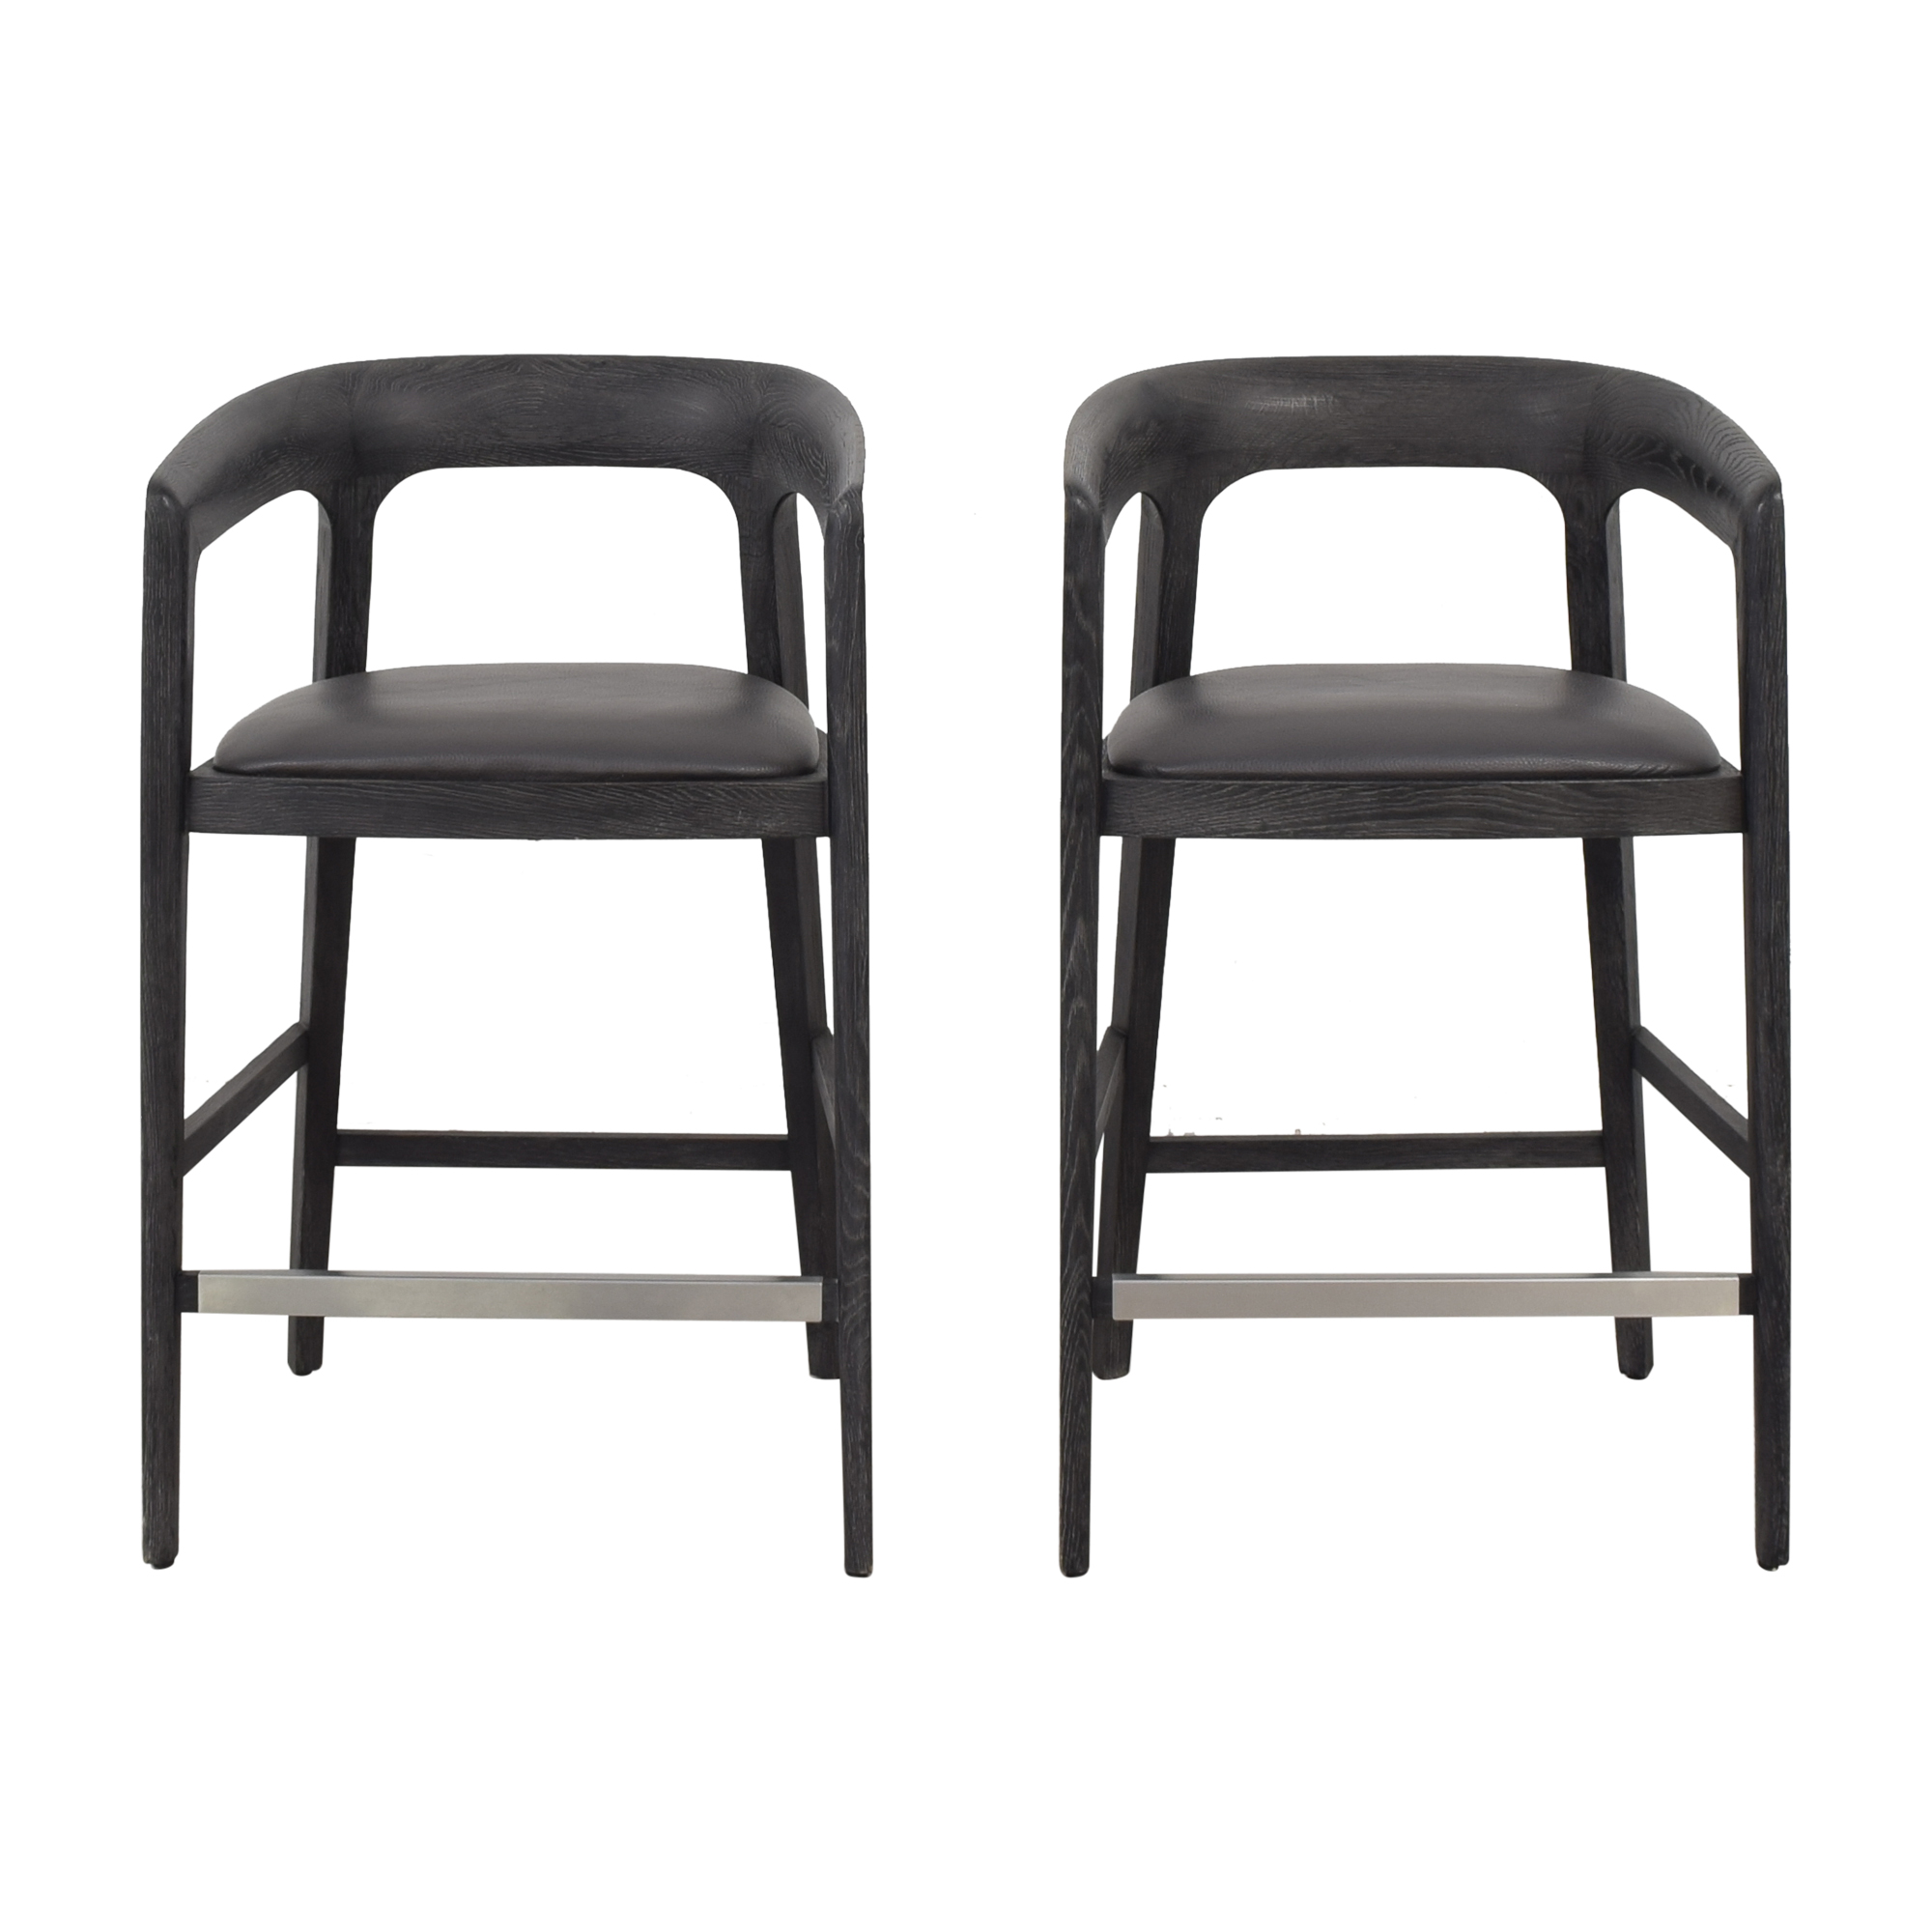 Interlude Home Interlude Home Kendra Counter Stools for sale